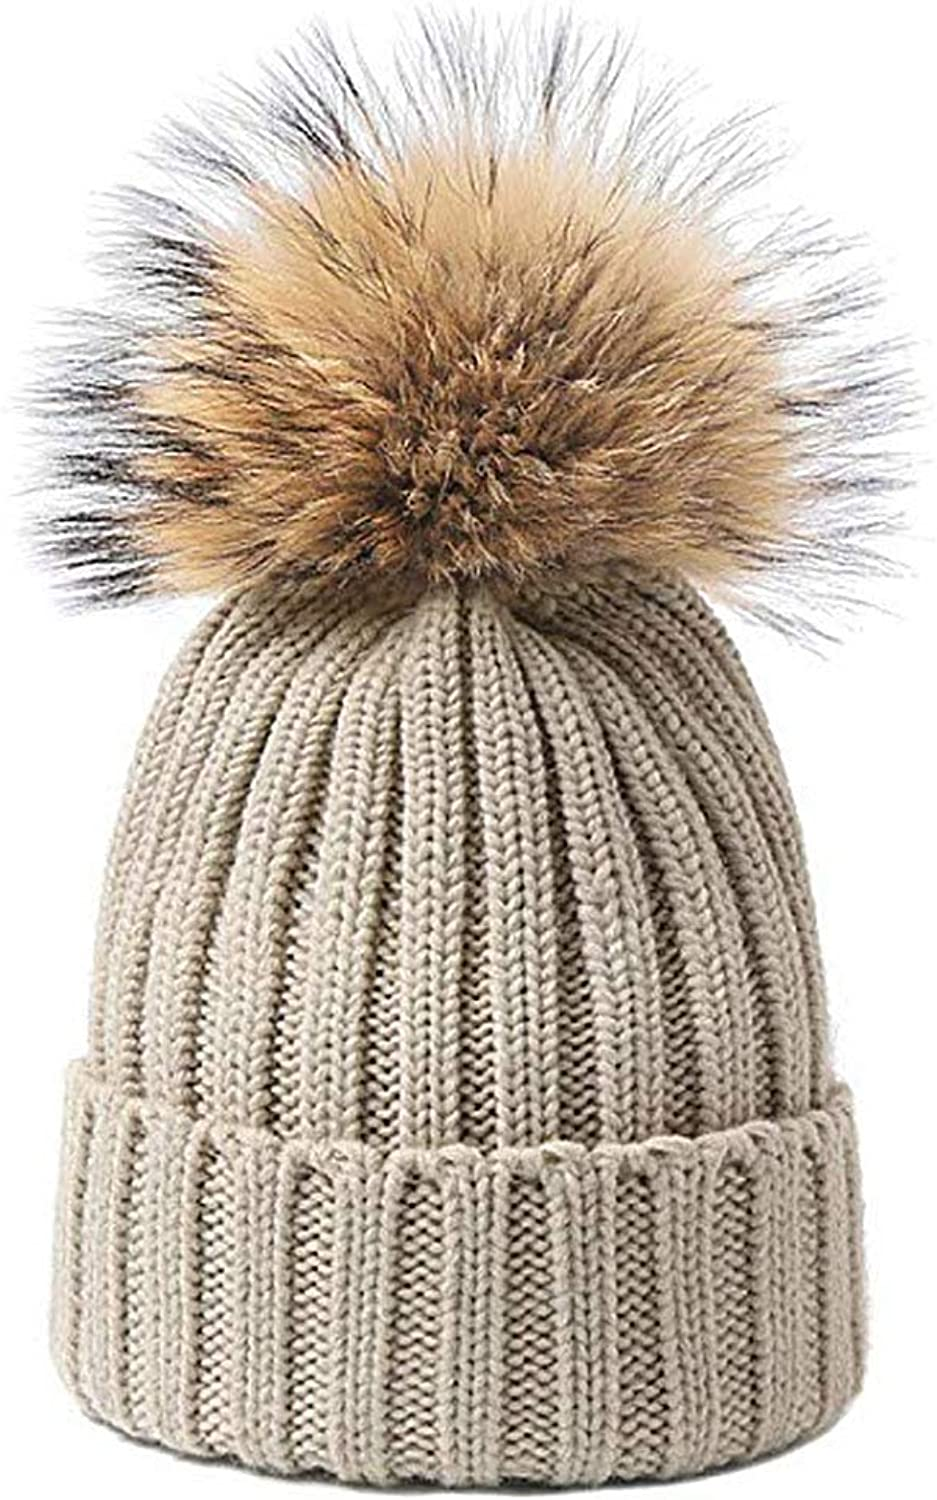 QiCheng Winter Hat with Pom Pom Faux Fur Beanie Hat Knitted Hat Patterns for Women